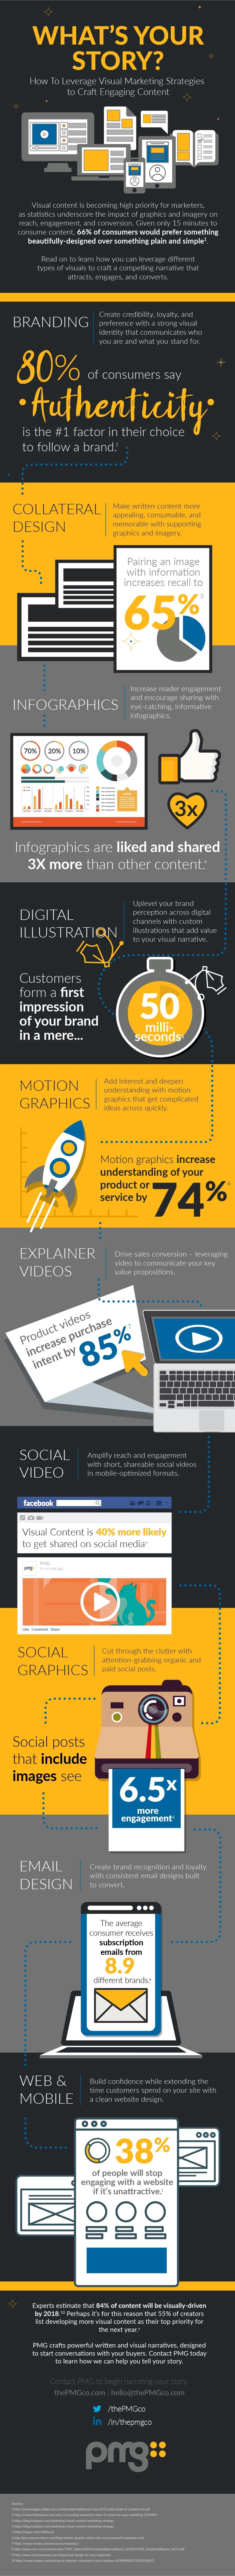 How to Leverage Visual Marketing Strategies to Craft Engaging Content [Infographic] | Social Media Today